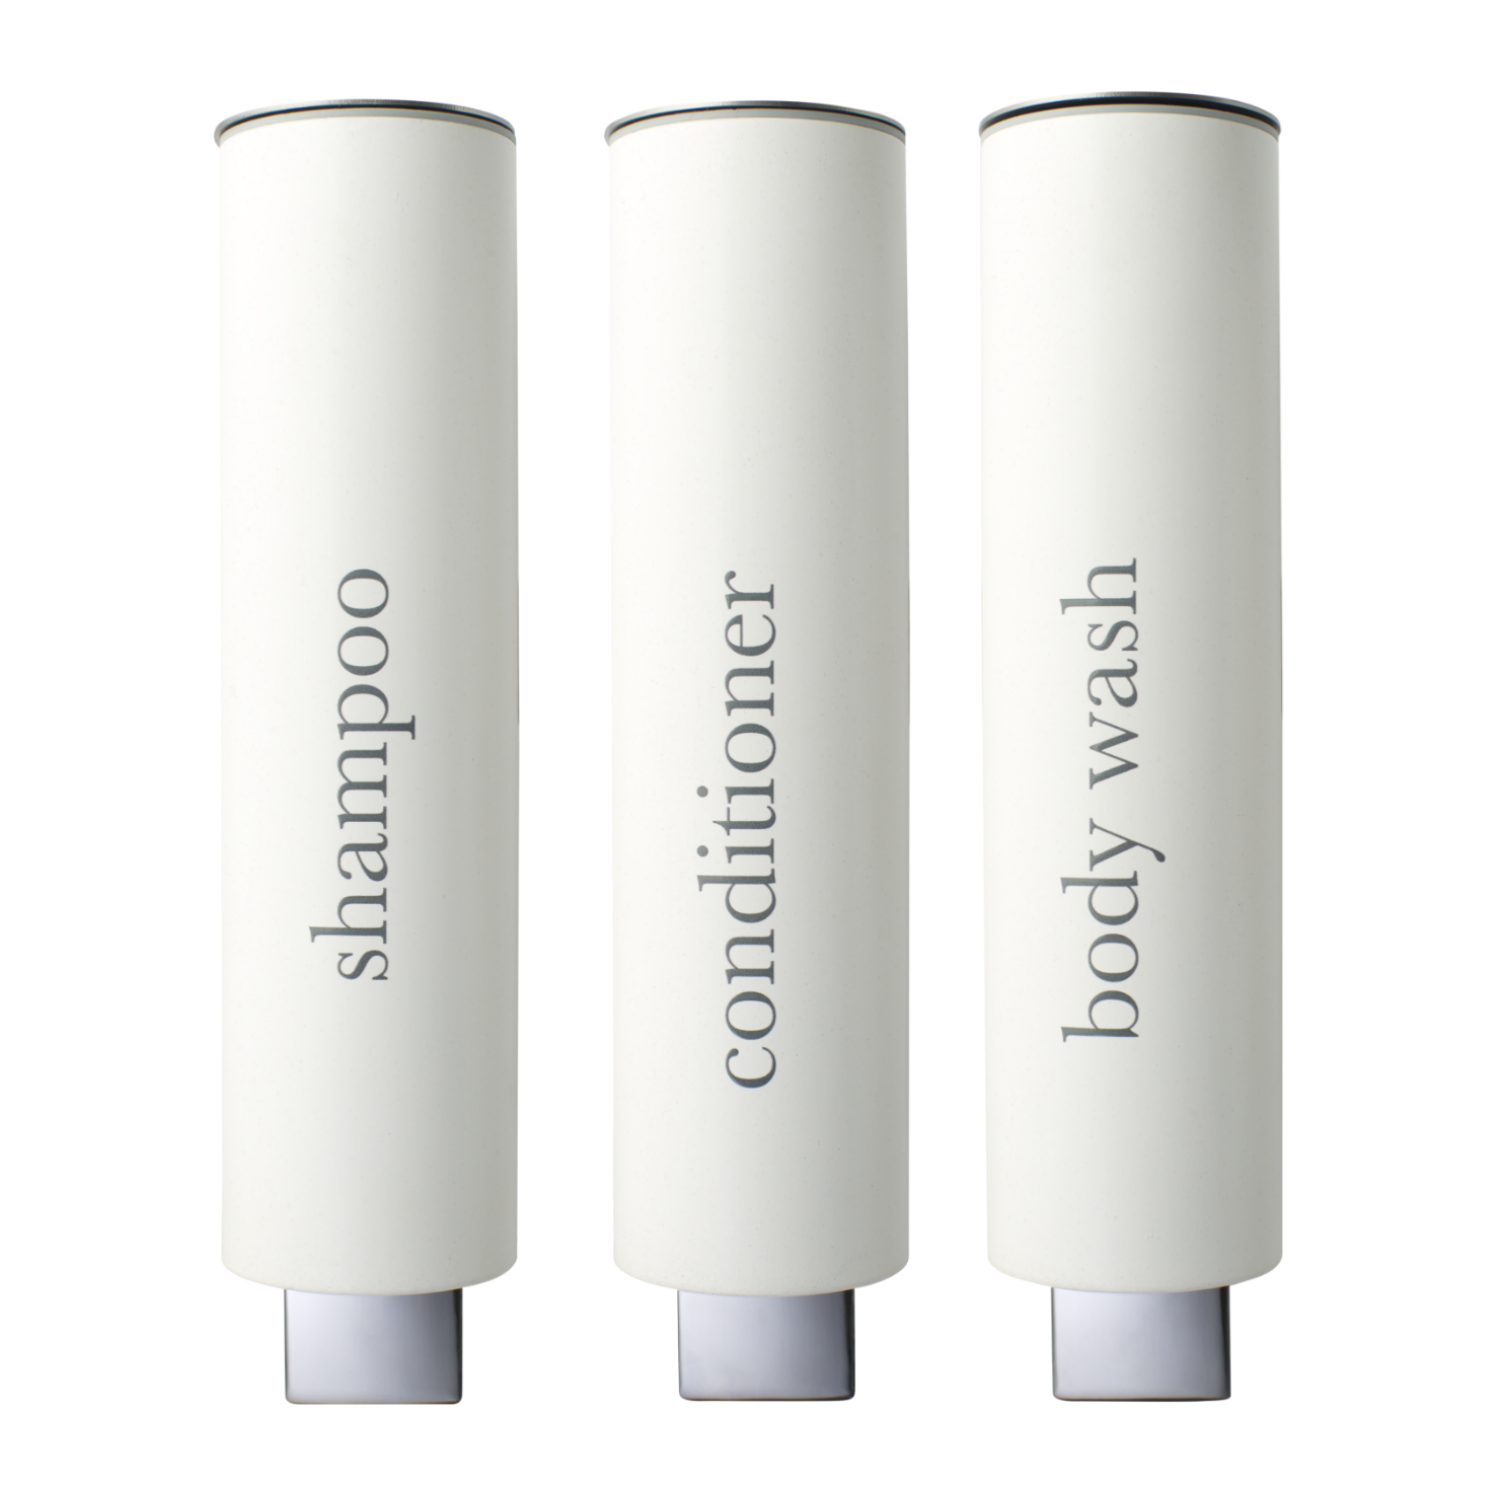 Kure matte white hotel shampoo dispensers with simple grey text.